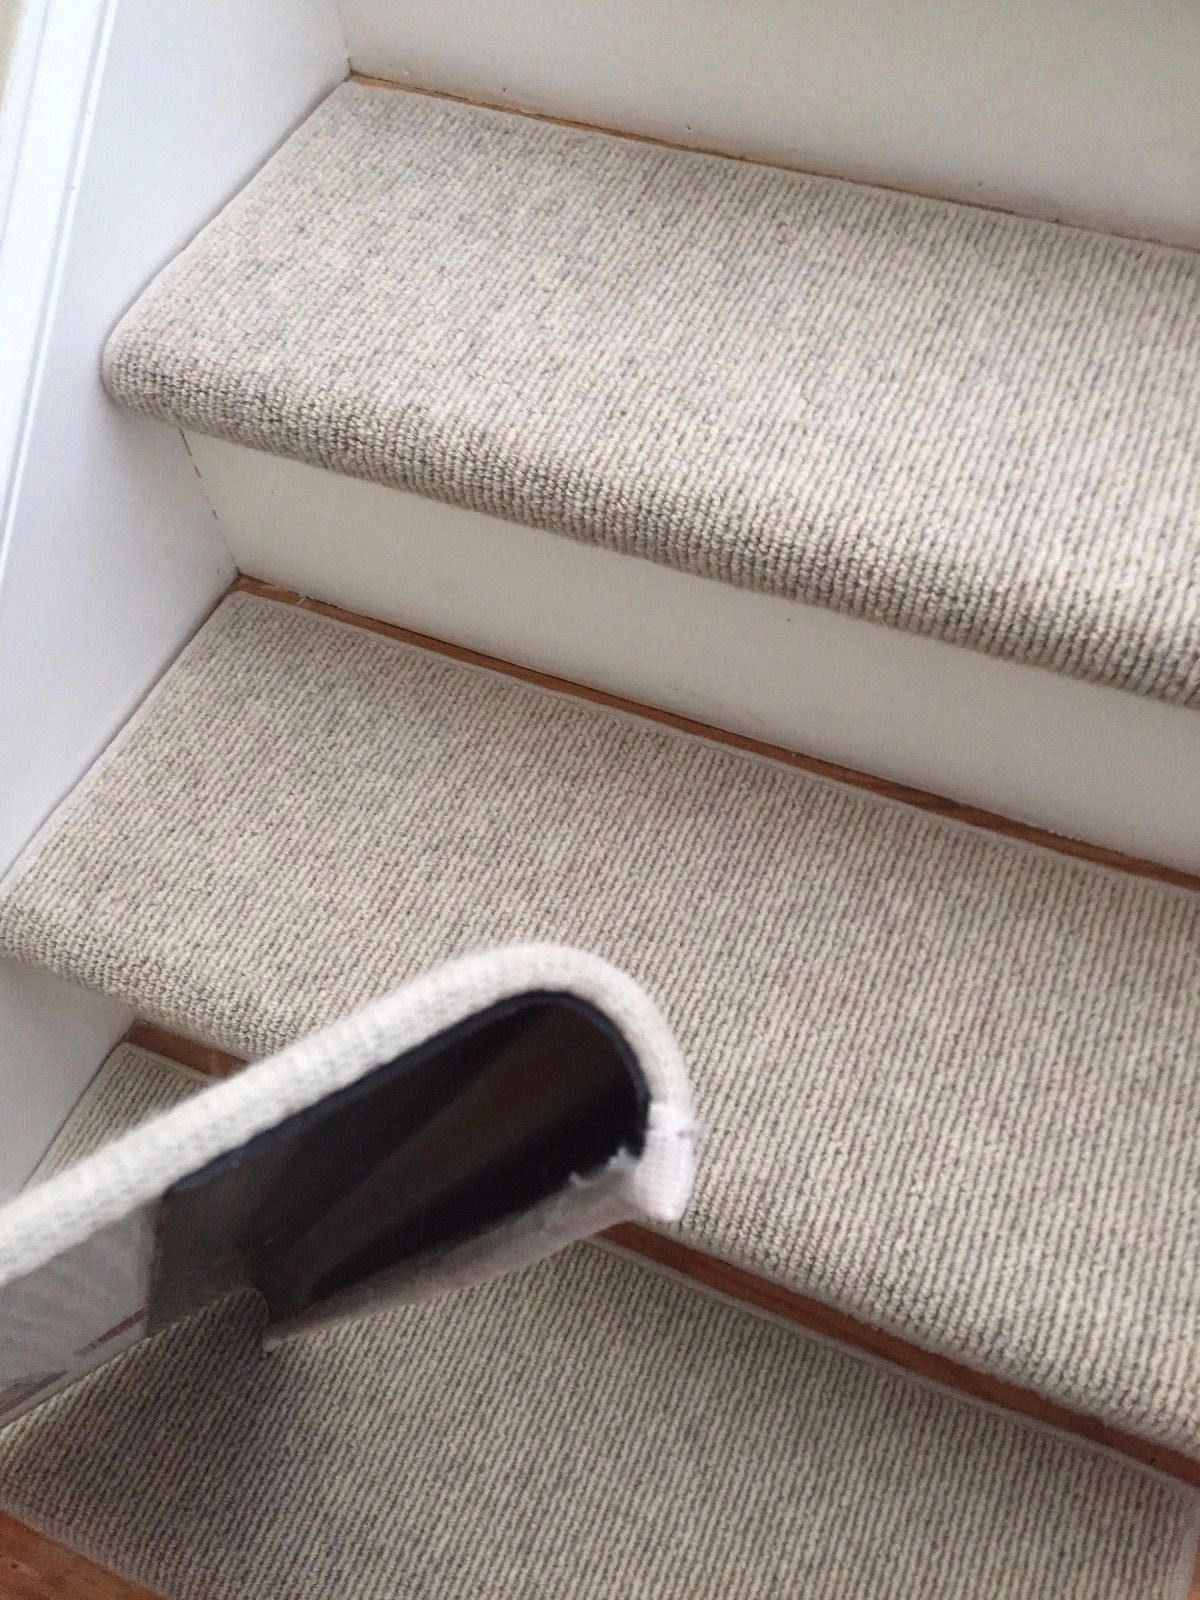 Best Morocco Wheat 100 Wool True Bullnose™ Padded Carpet Stair Tread Runner Replacement For Style 400 x 300